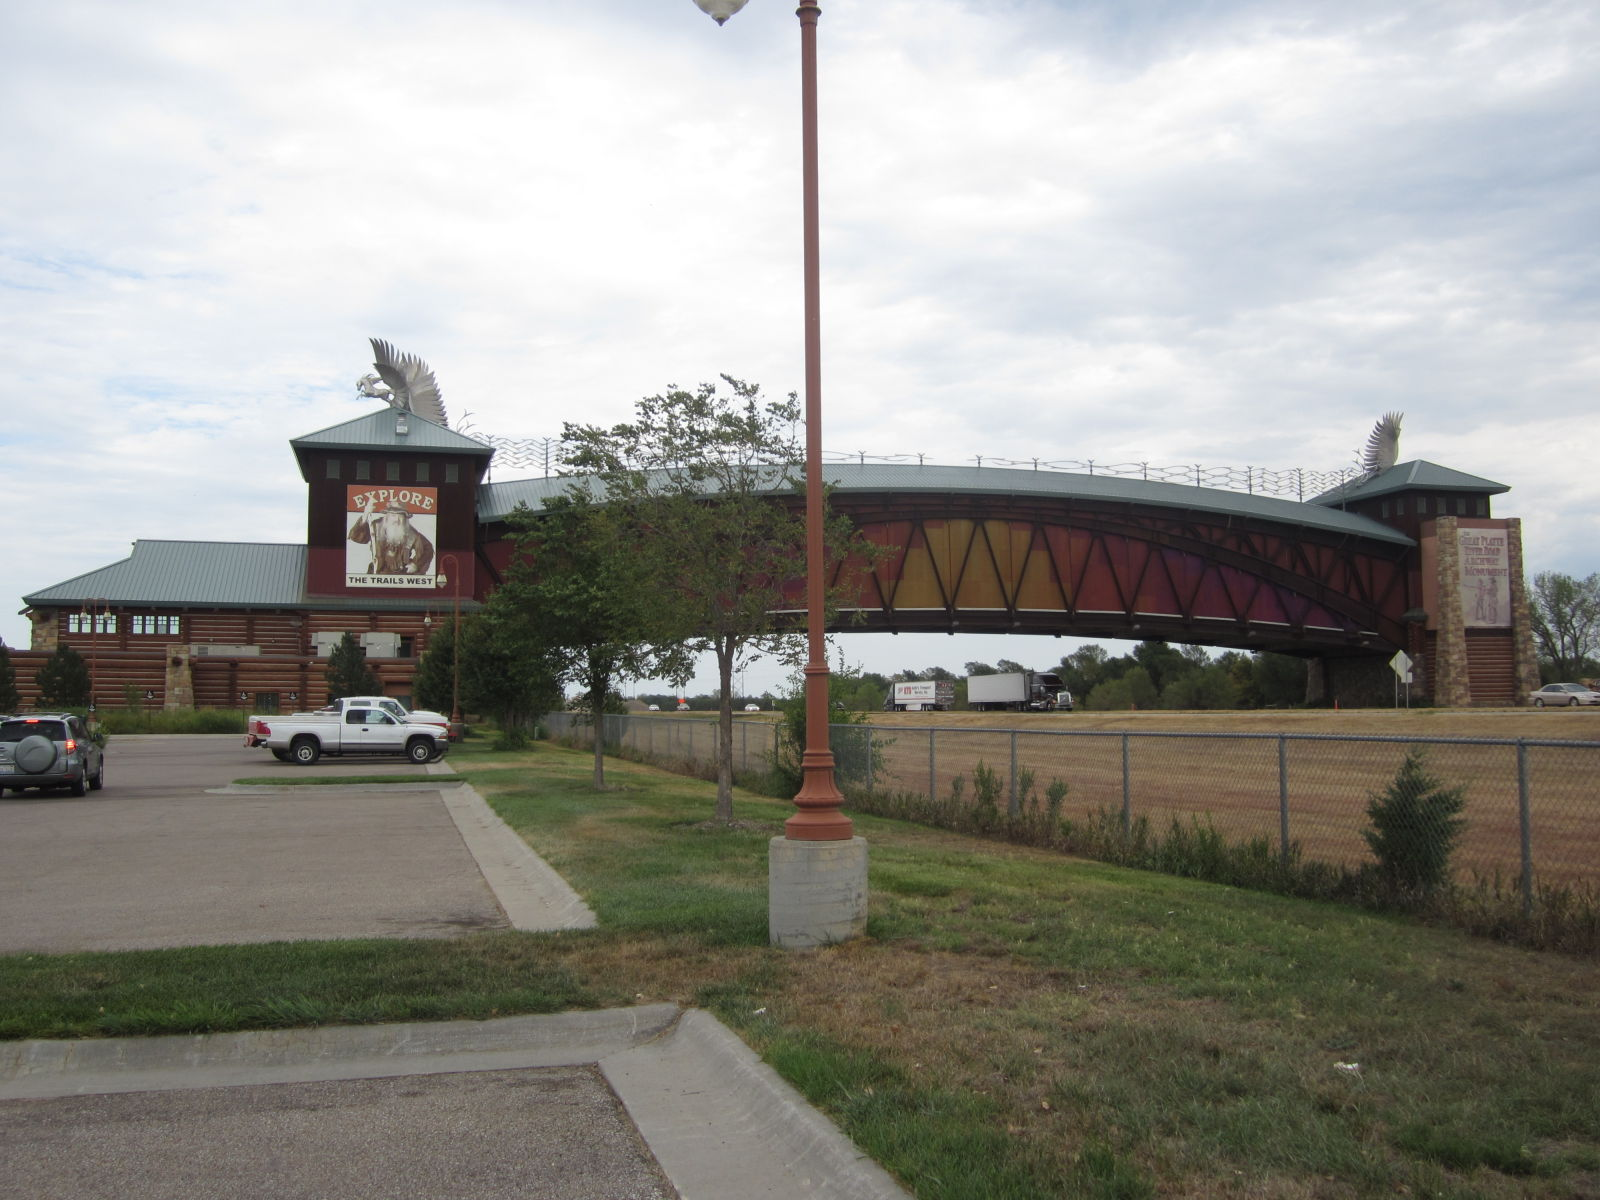 Great Platte River Road Archway